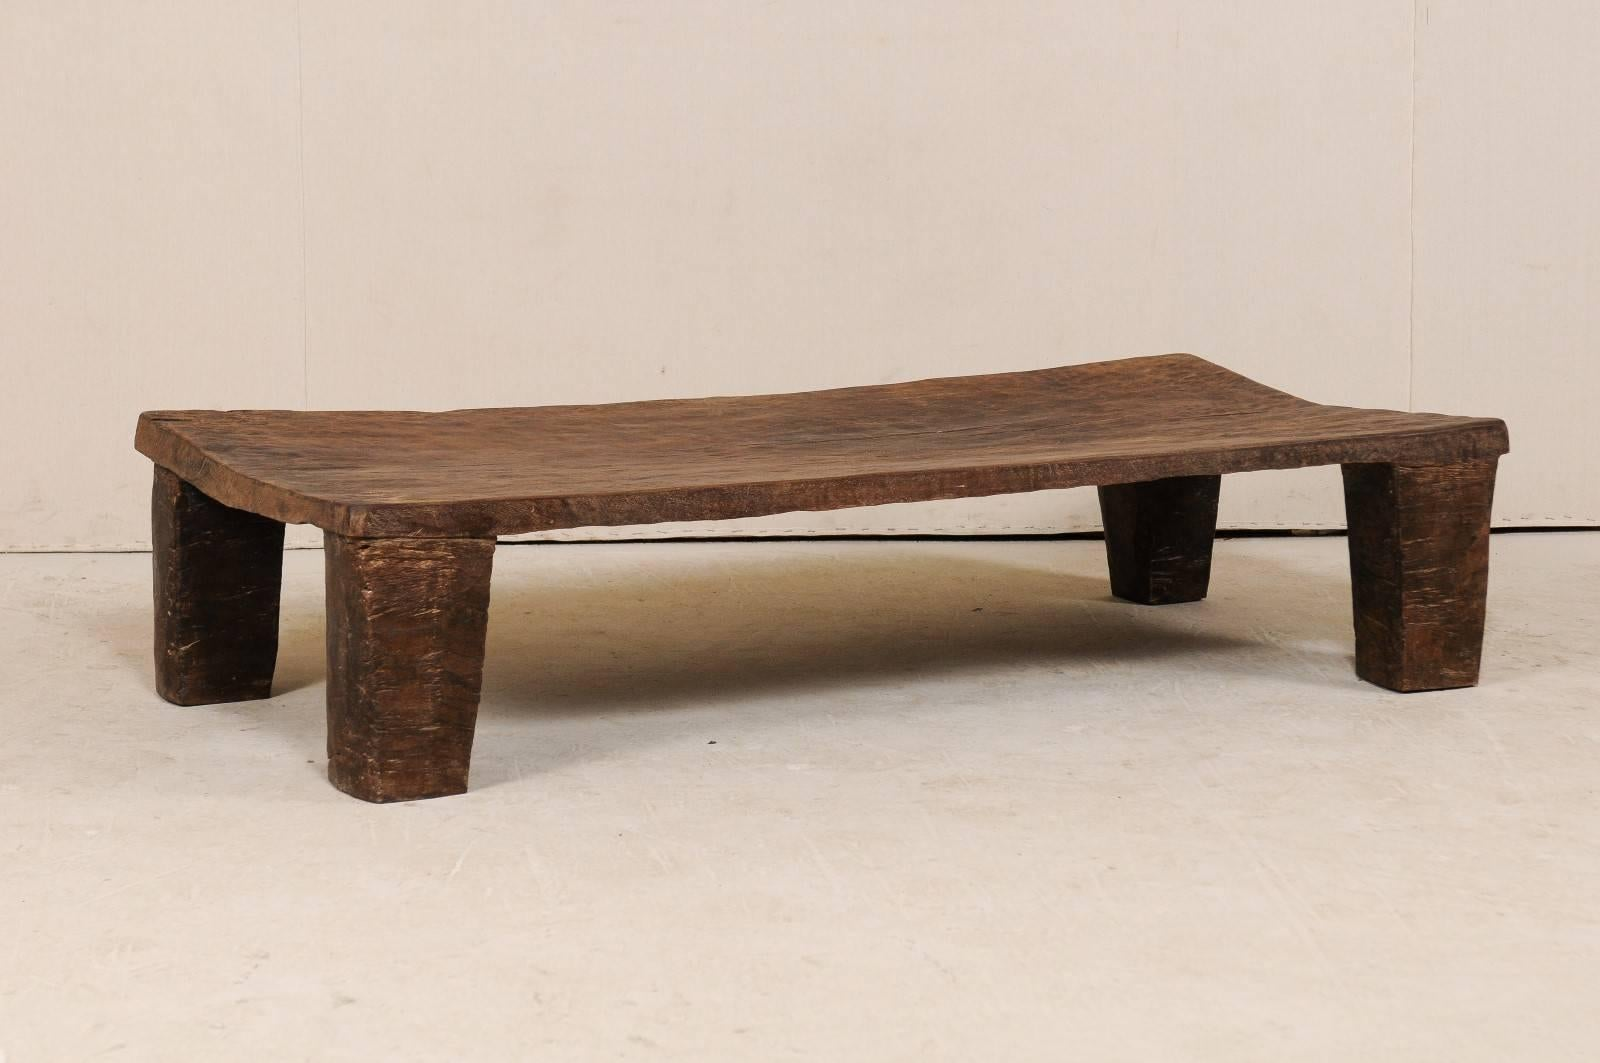 Indian Late 19th Century Nagaland, India Bed Made Rustic Wood Coffee Table  For Sale